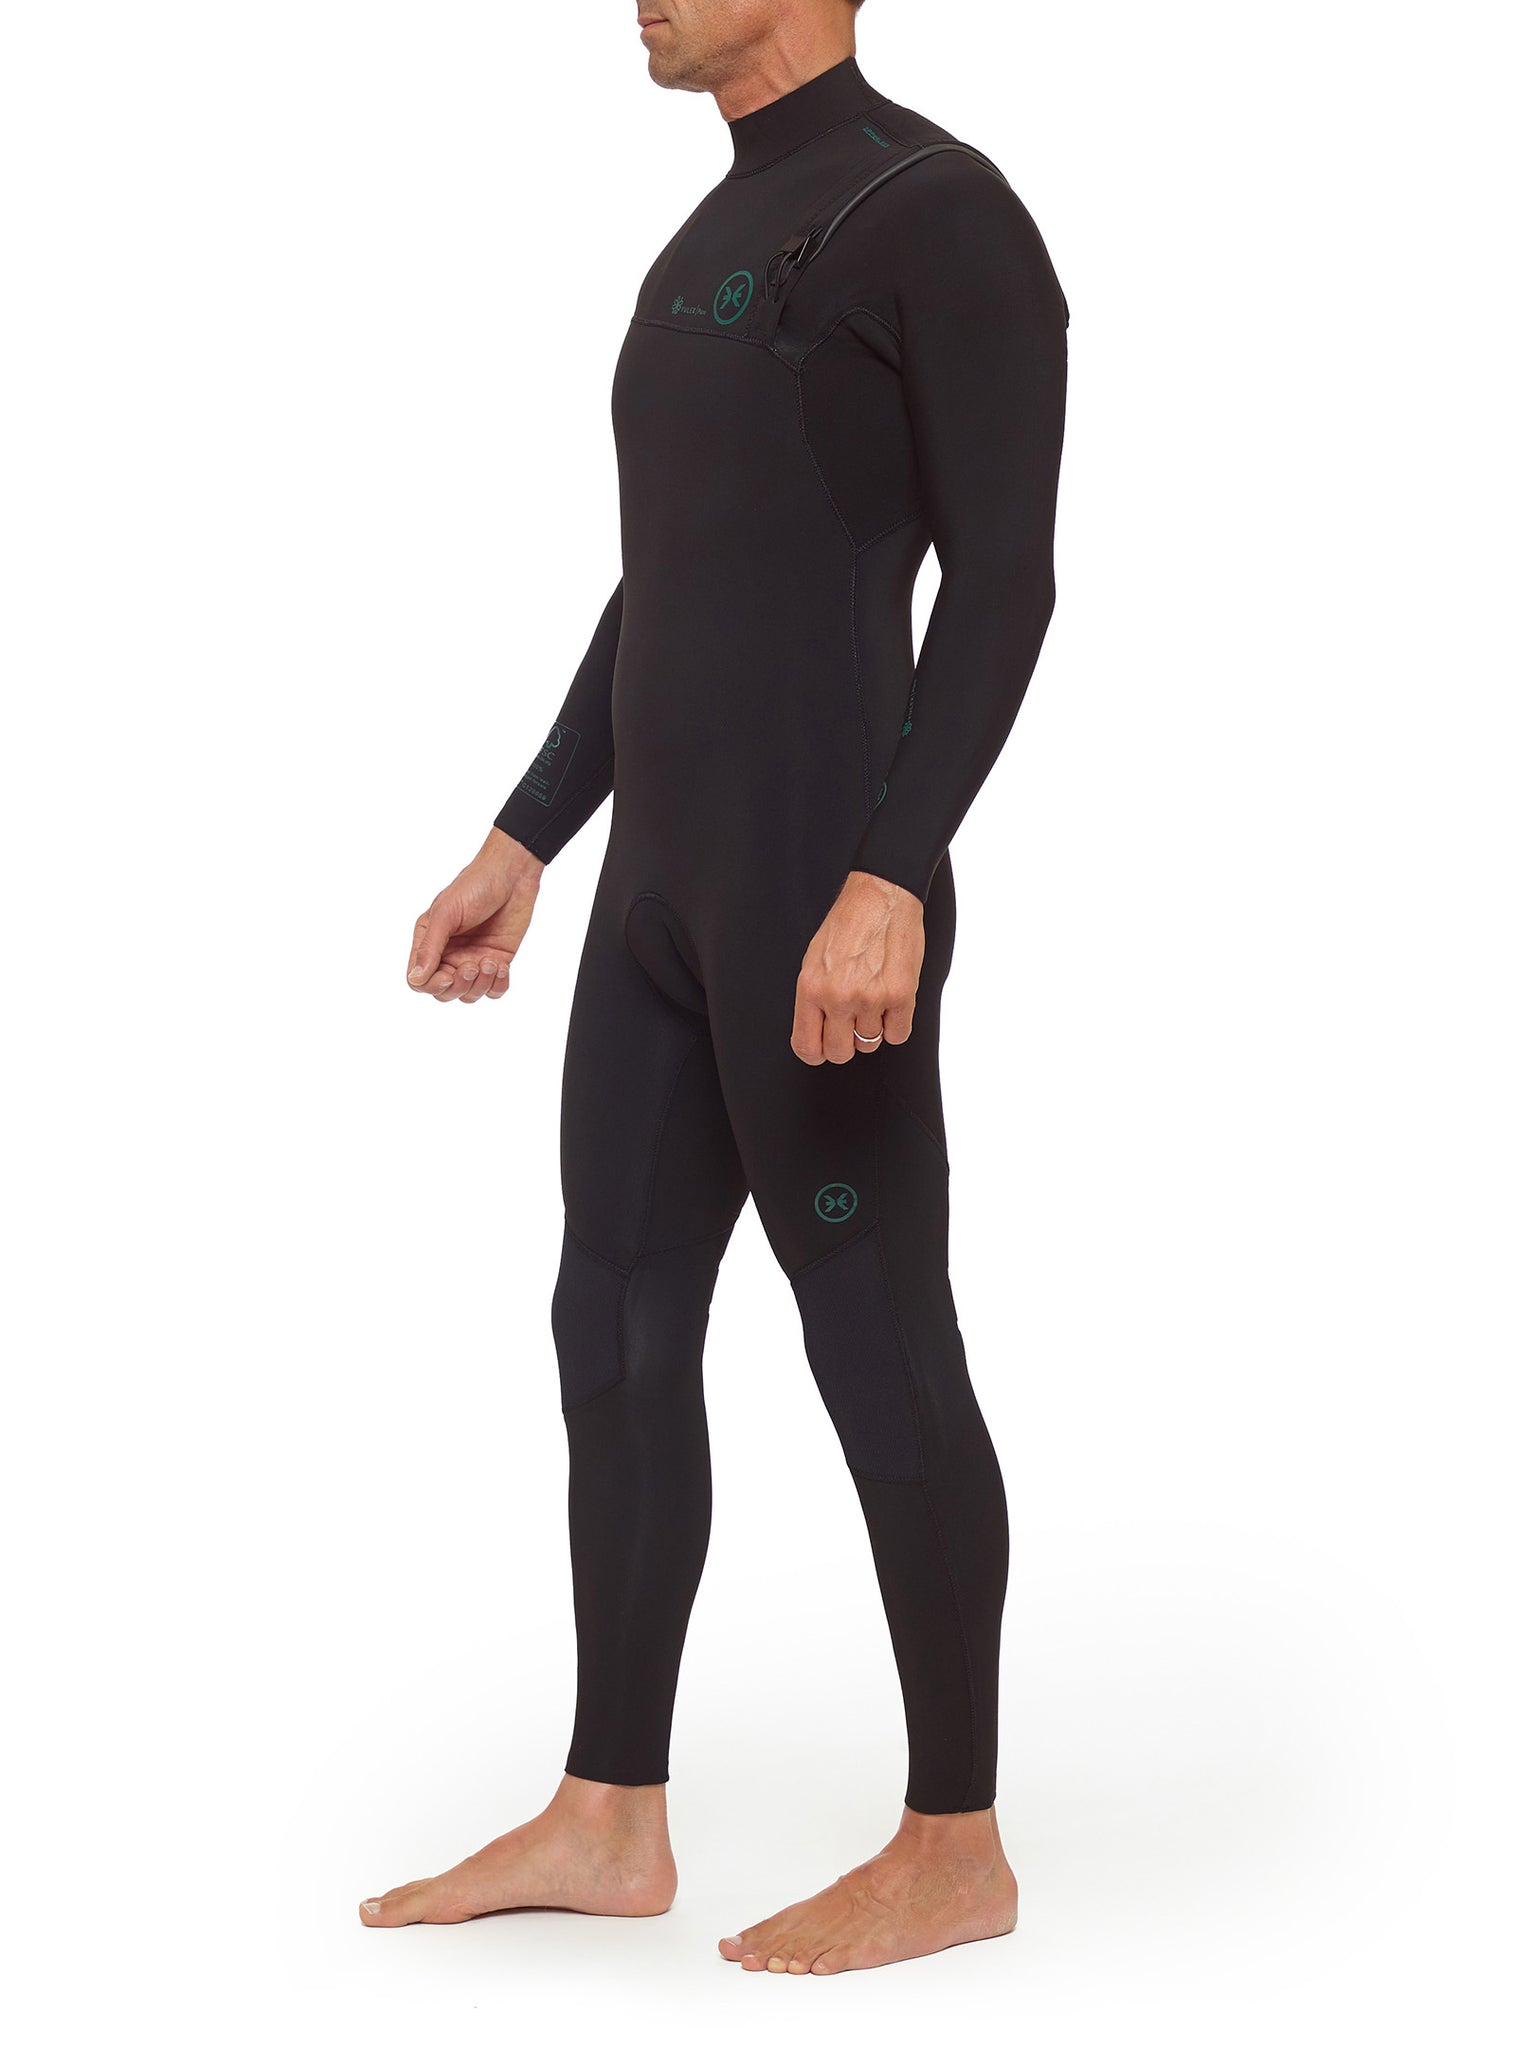 Wetsuit Man Competition Yulex 4/3 Zipperless Black